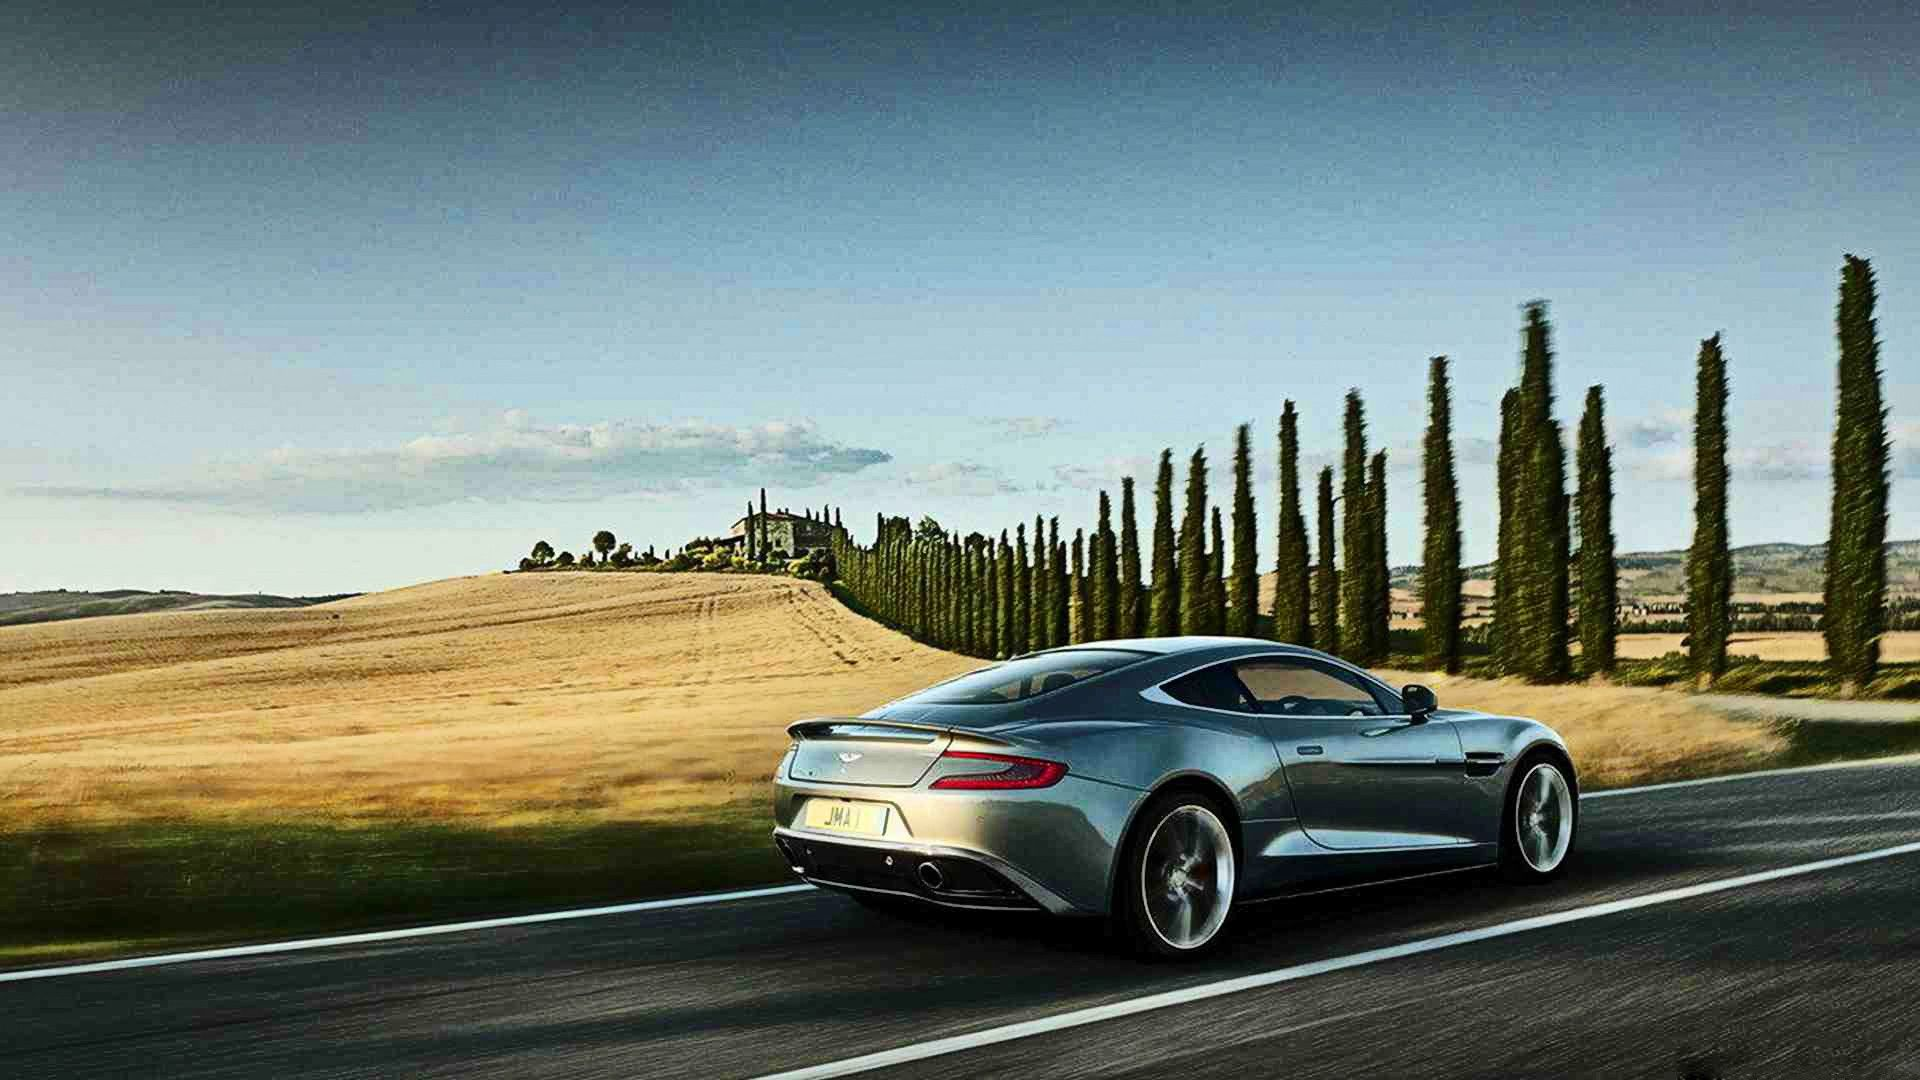 Free Aston Martin Vanquish Wallpapers High Quality Resolution at